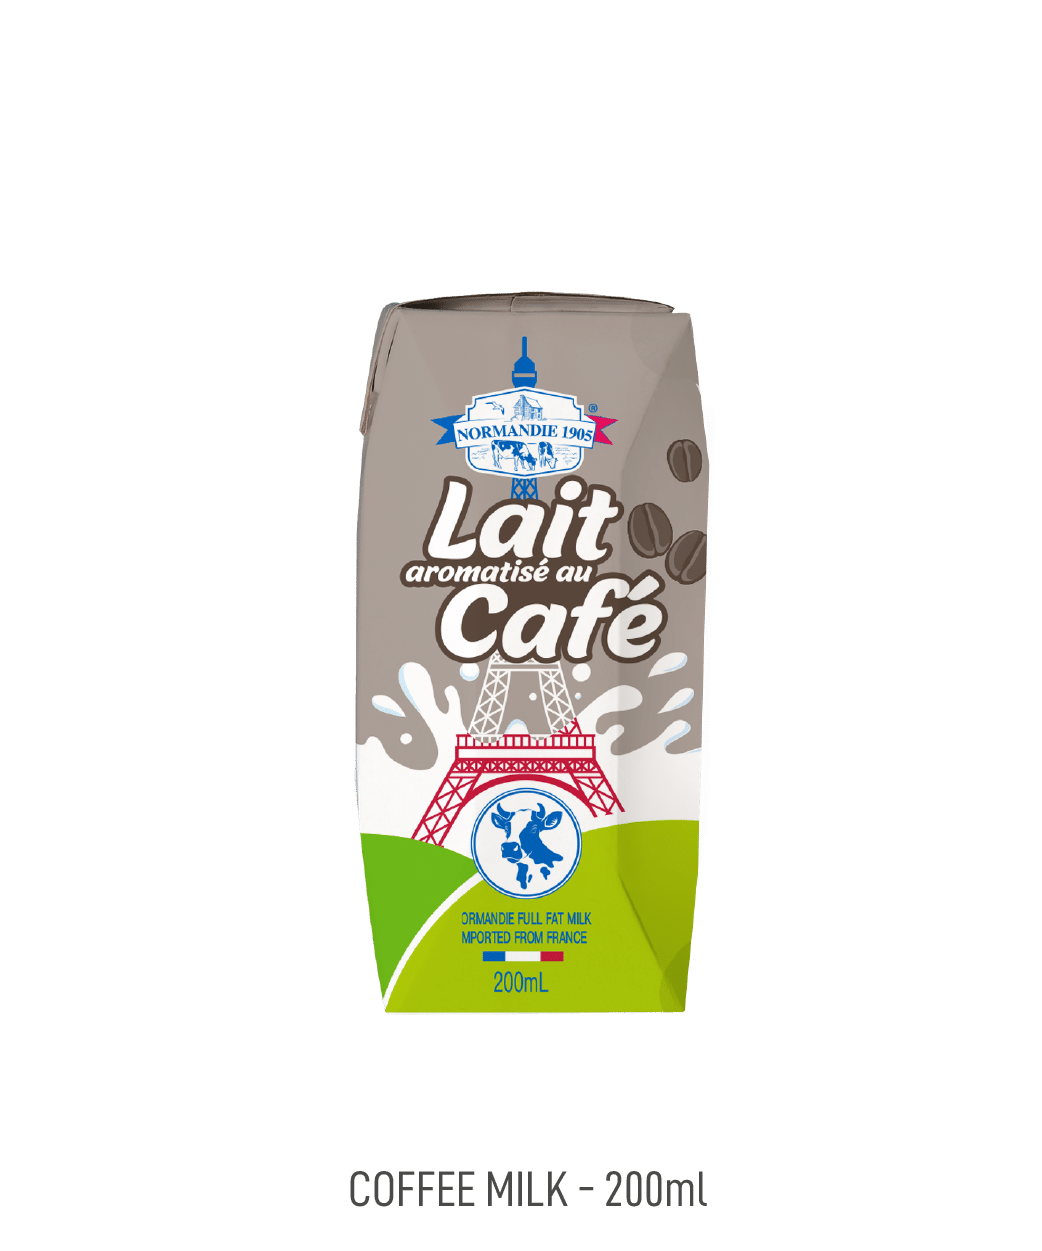 Lait au café Normandie 1905 200ml